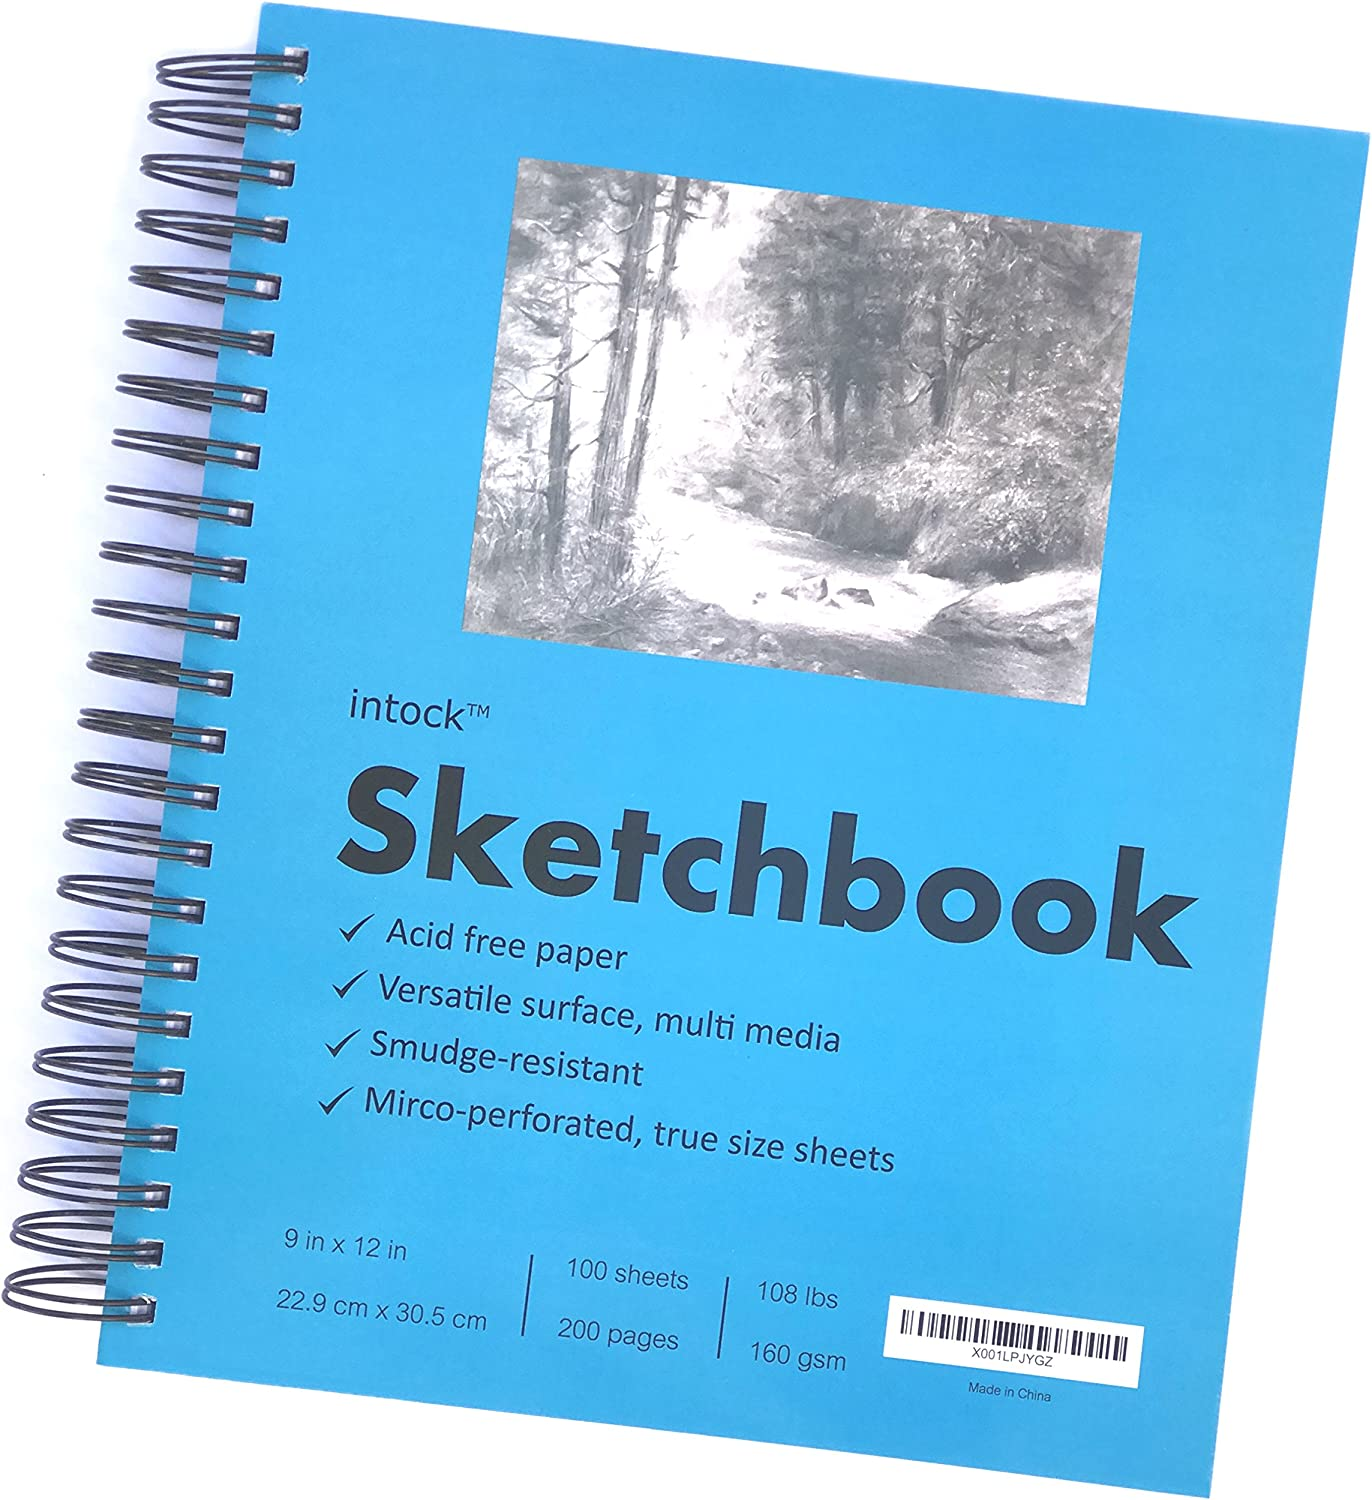 Ideal for Pen,Colored Pencil and Light Wash Watercolor Painting 117lb//190g Total 100 Sheets Acid-Free Paper 2Pack Sketchbooks with Spiral Bound LYTek Mixed Media Paper,Hardcover Sketchbook 9x12